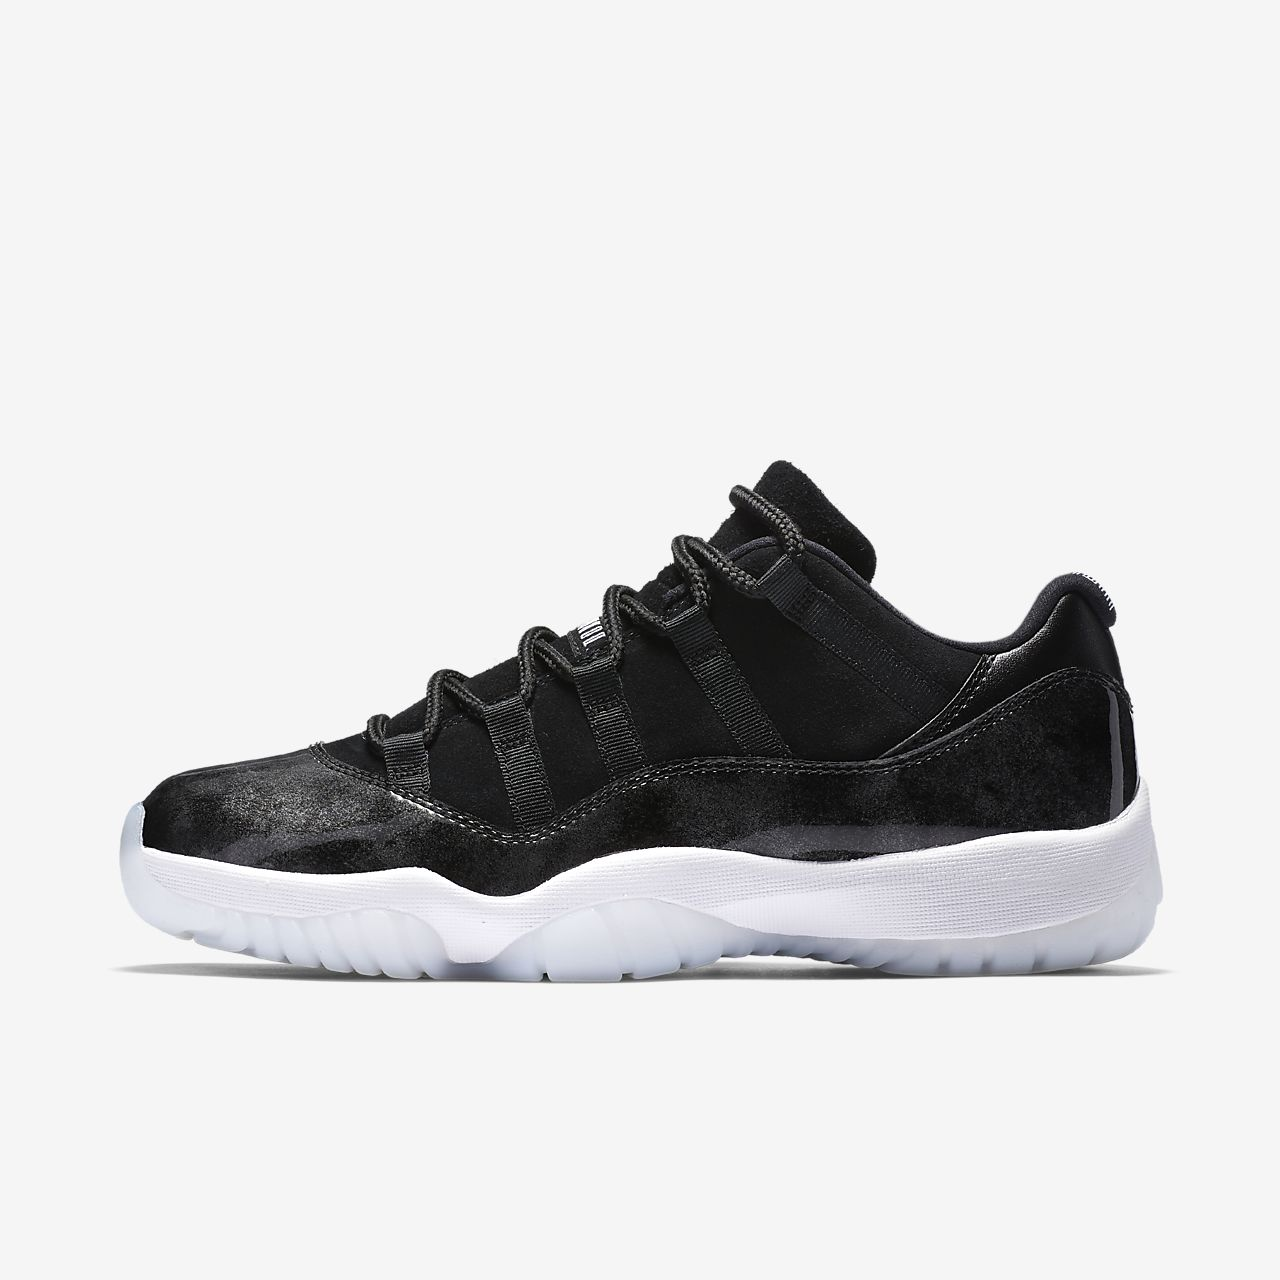 san francisco efdb6 04cdc Air Jordan 11 Retro Low